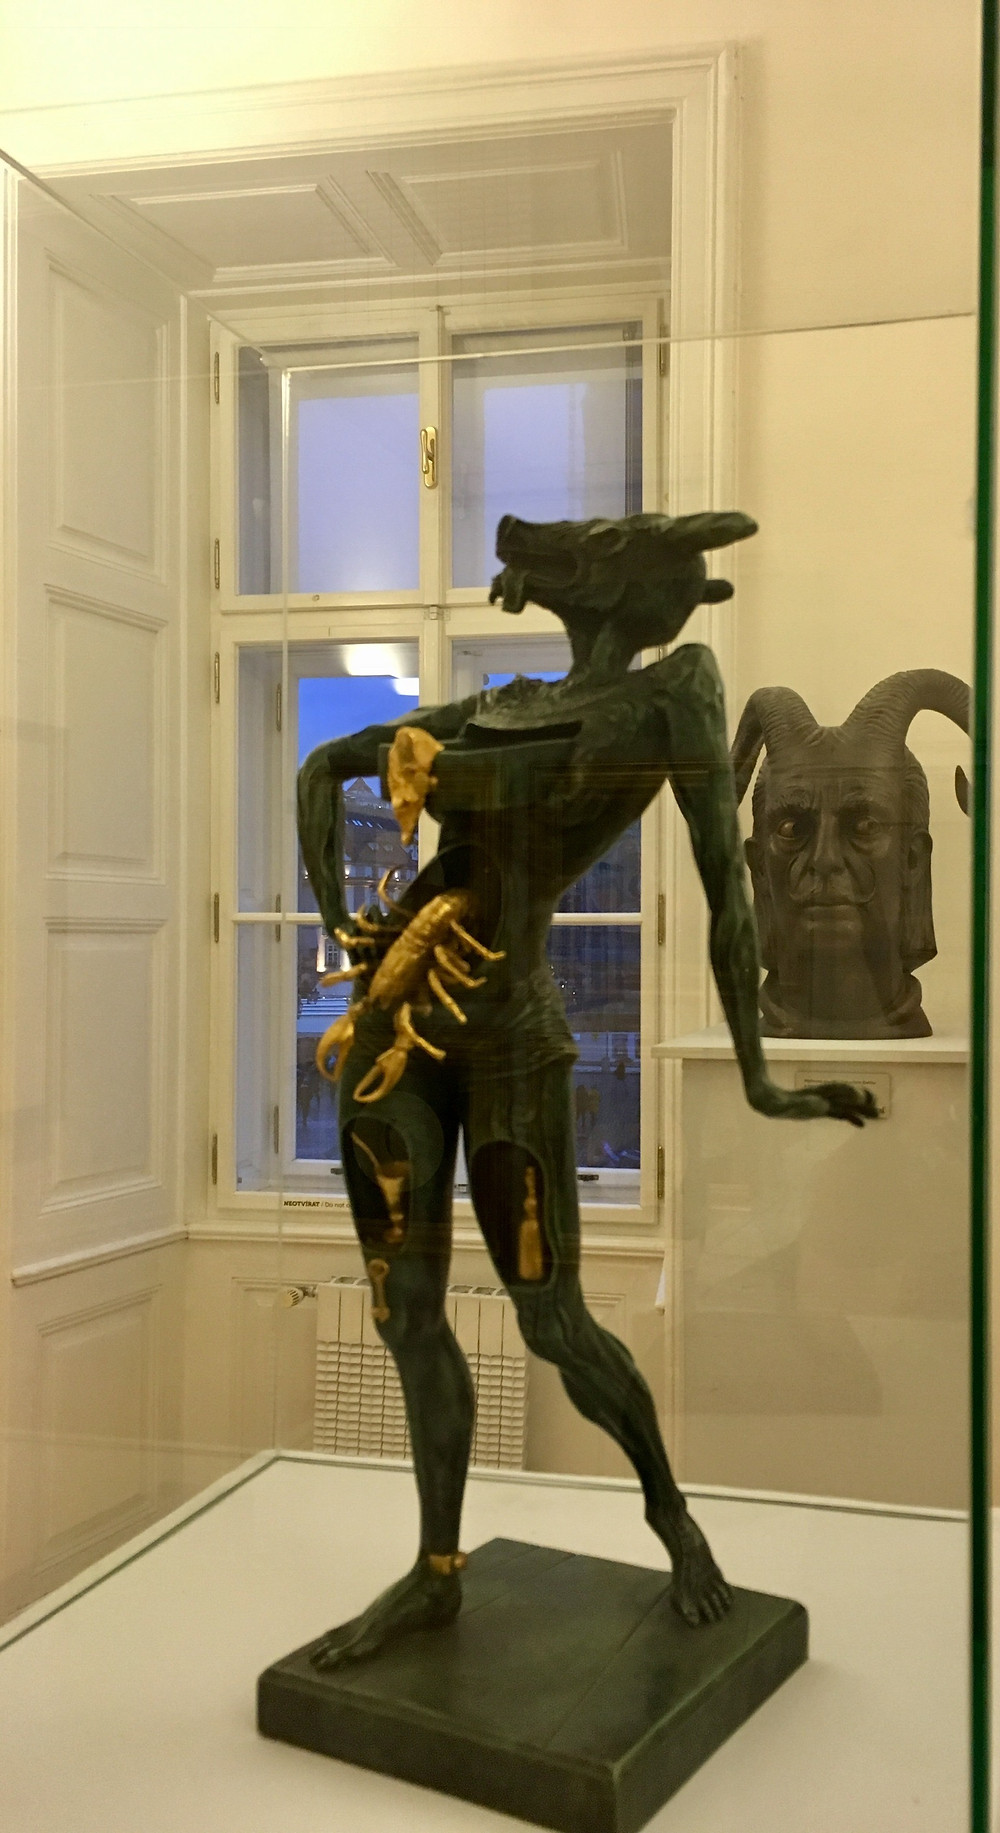 Dalí: Minotaur and Dalí bust with horns